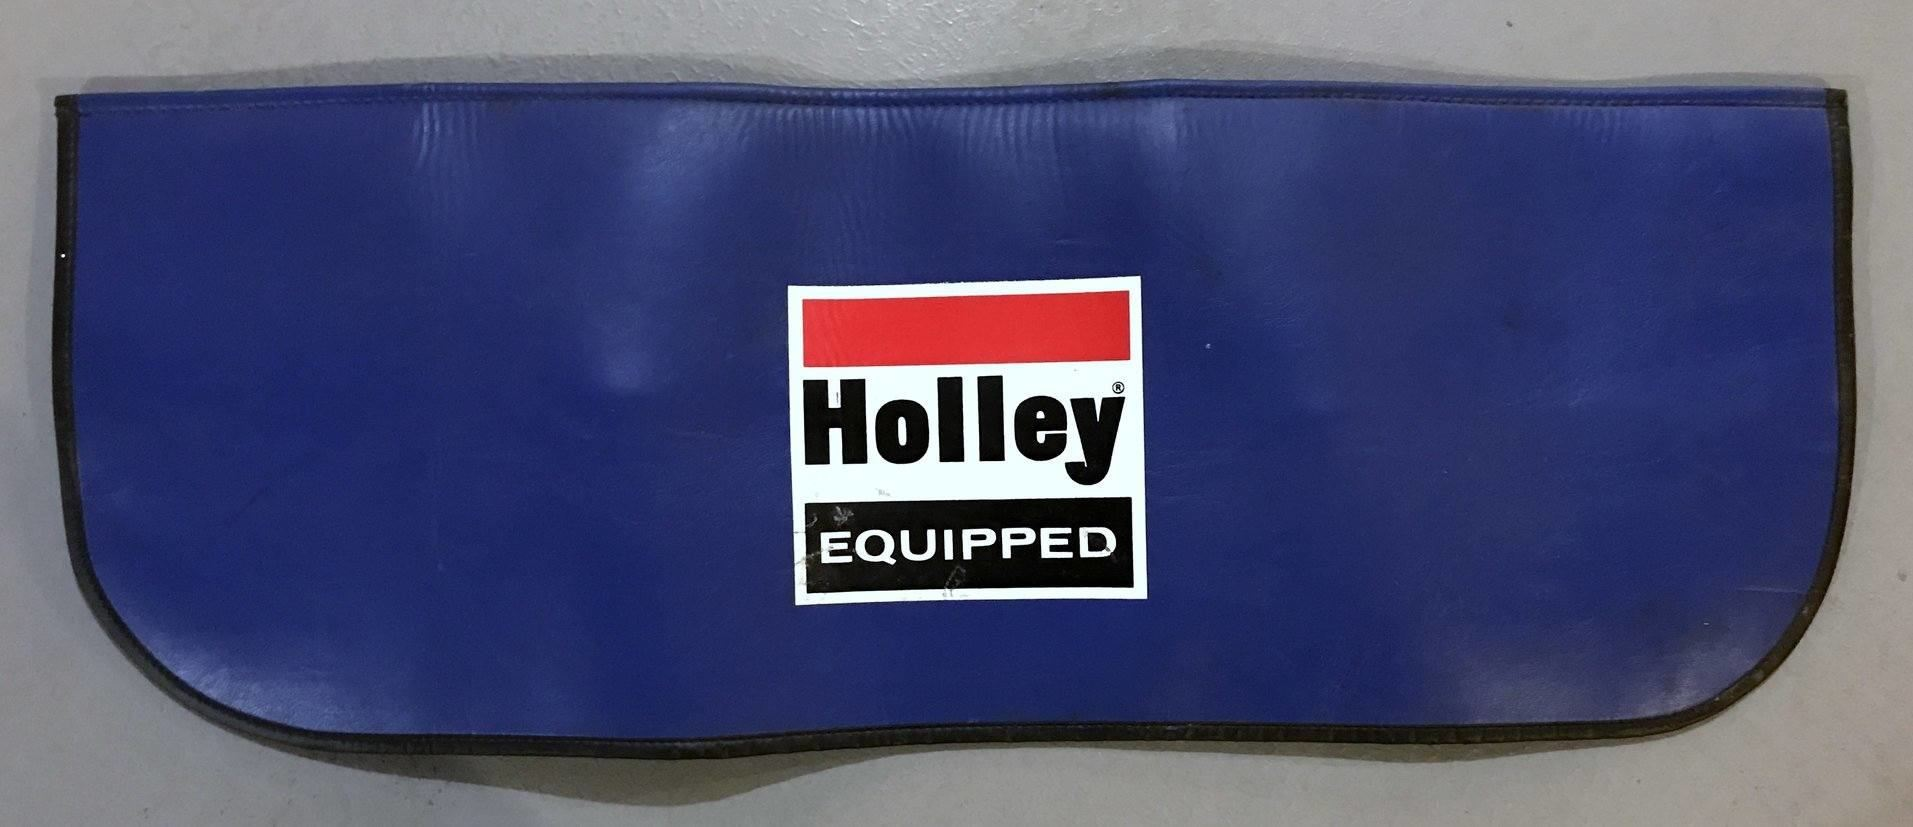 rsz_holley_fender_protector-1.jpg